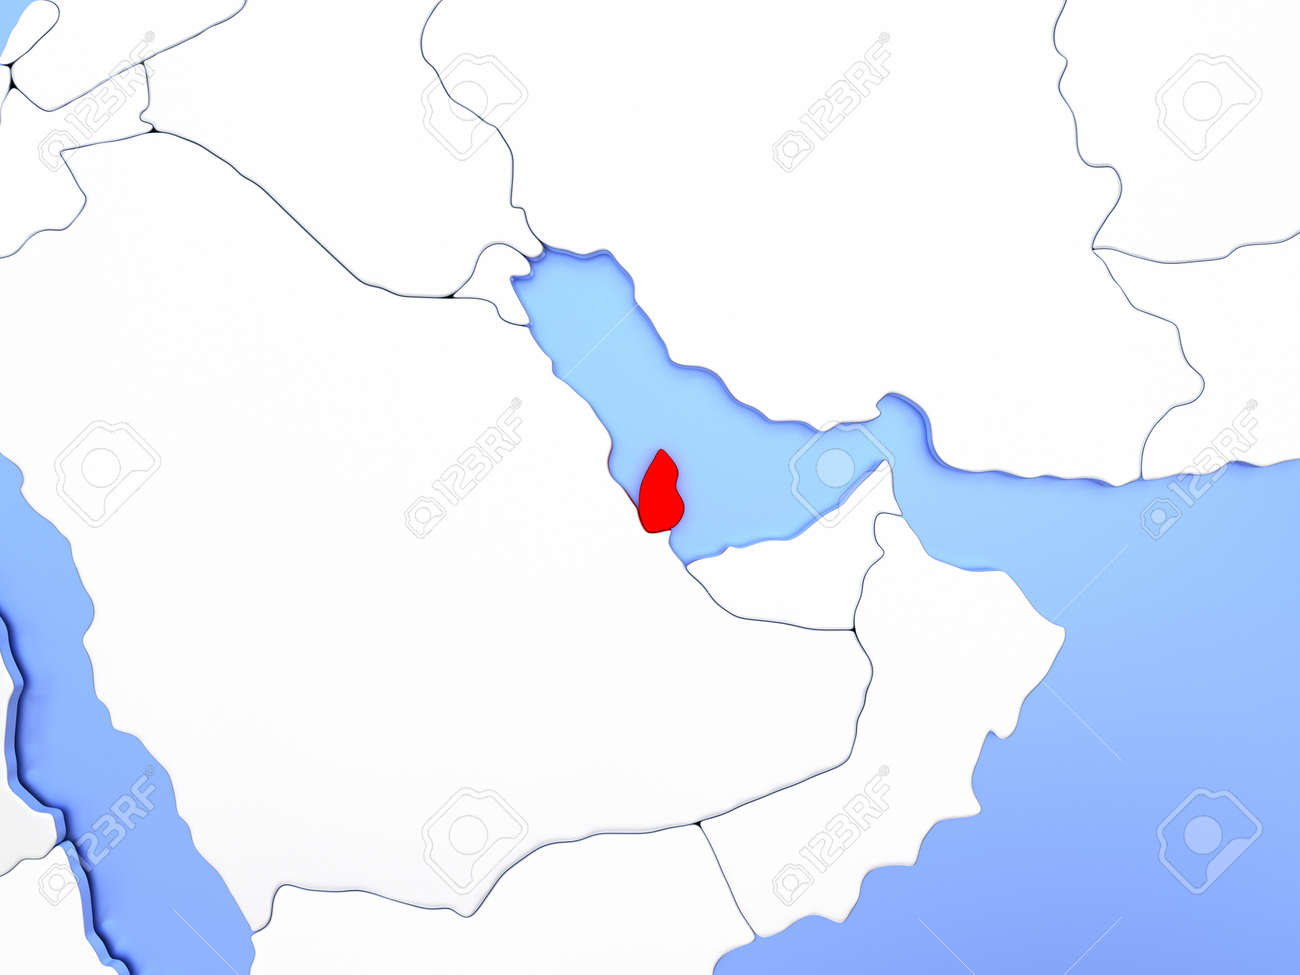 Map Of Qatar Highlighted In Red On Simple Shiny Metallic Map Stock